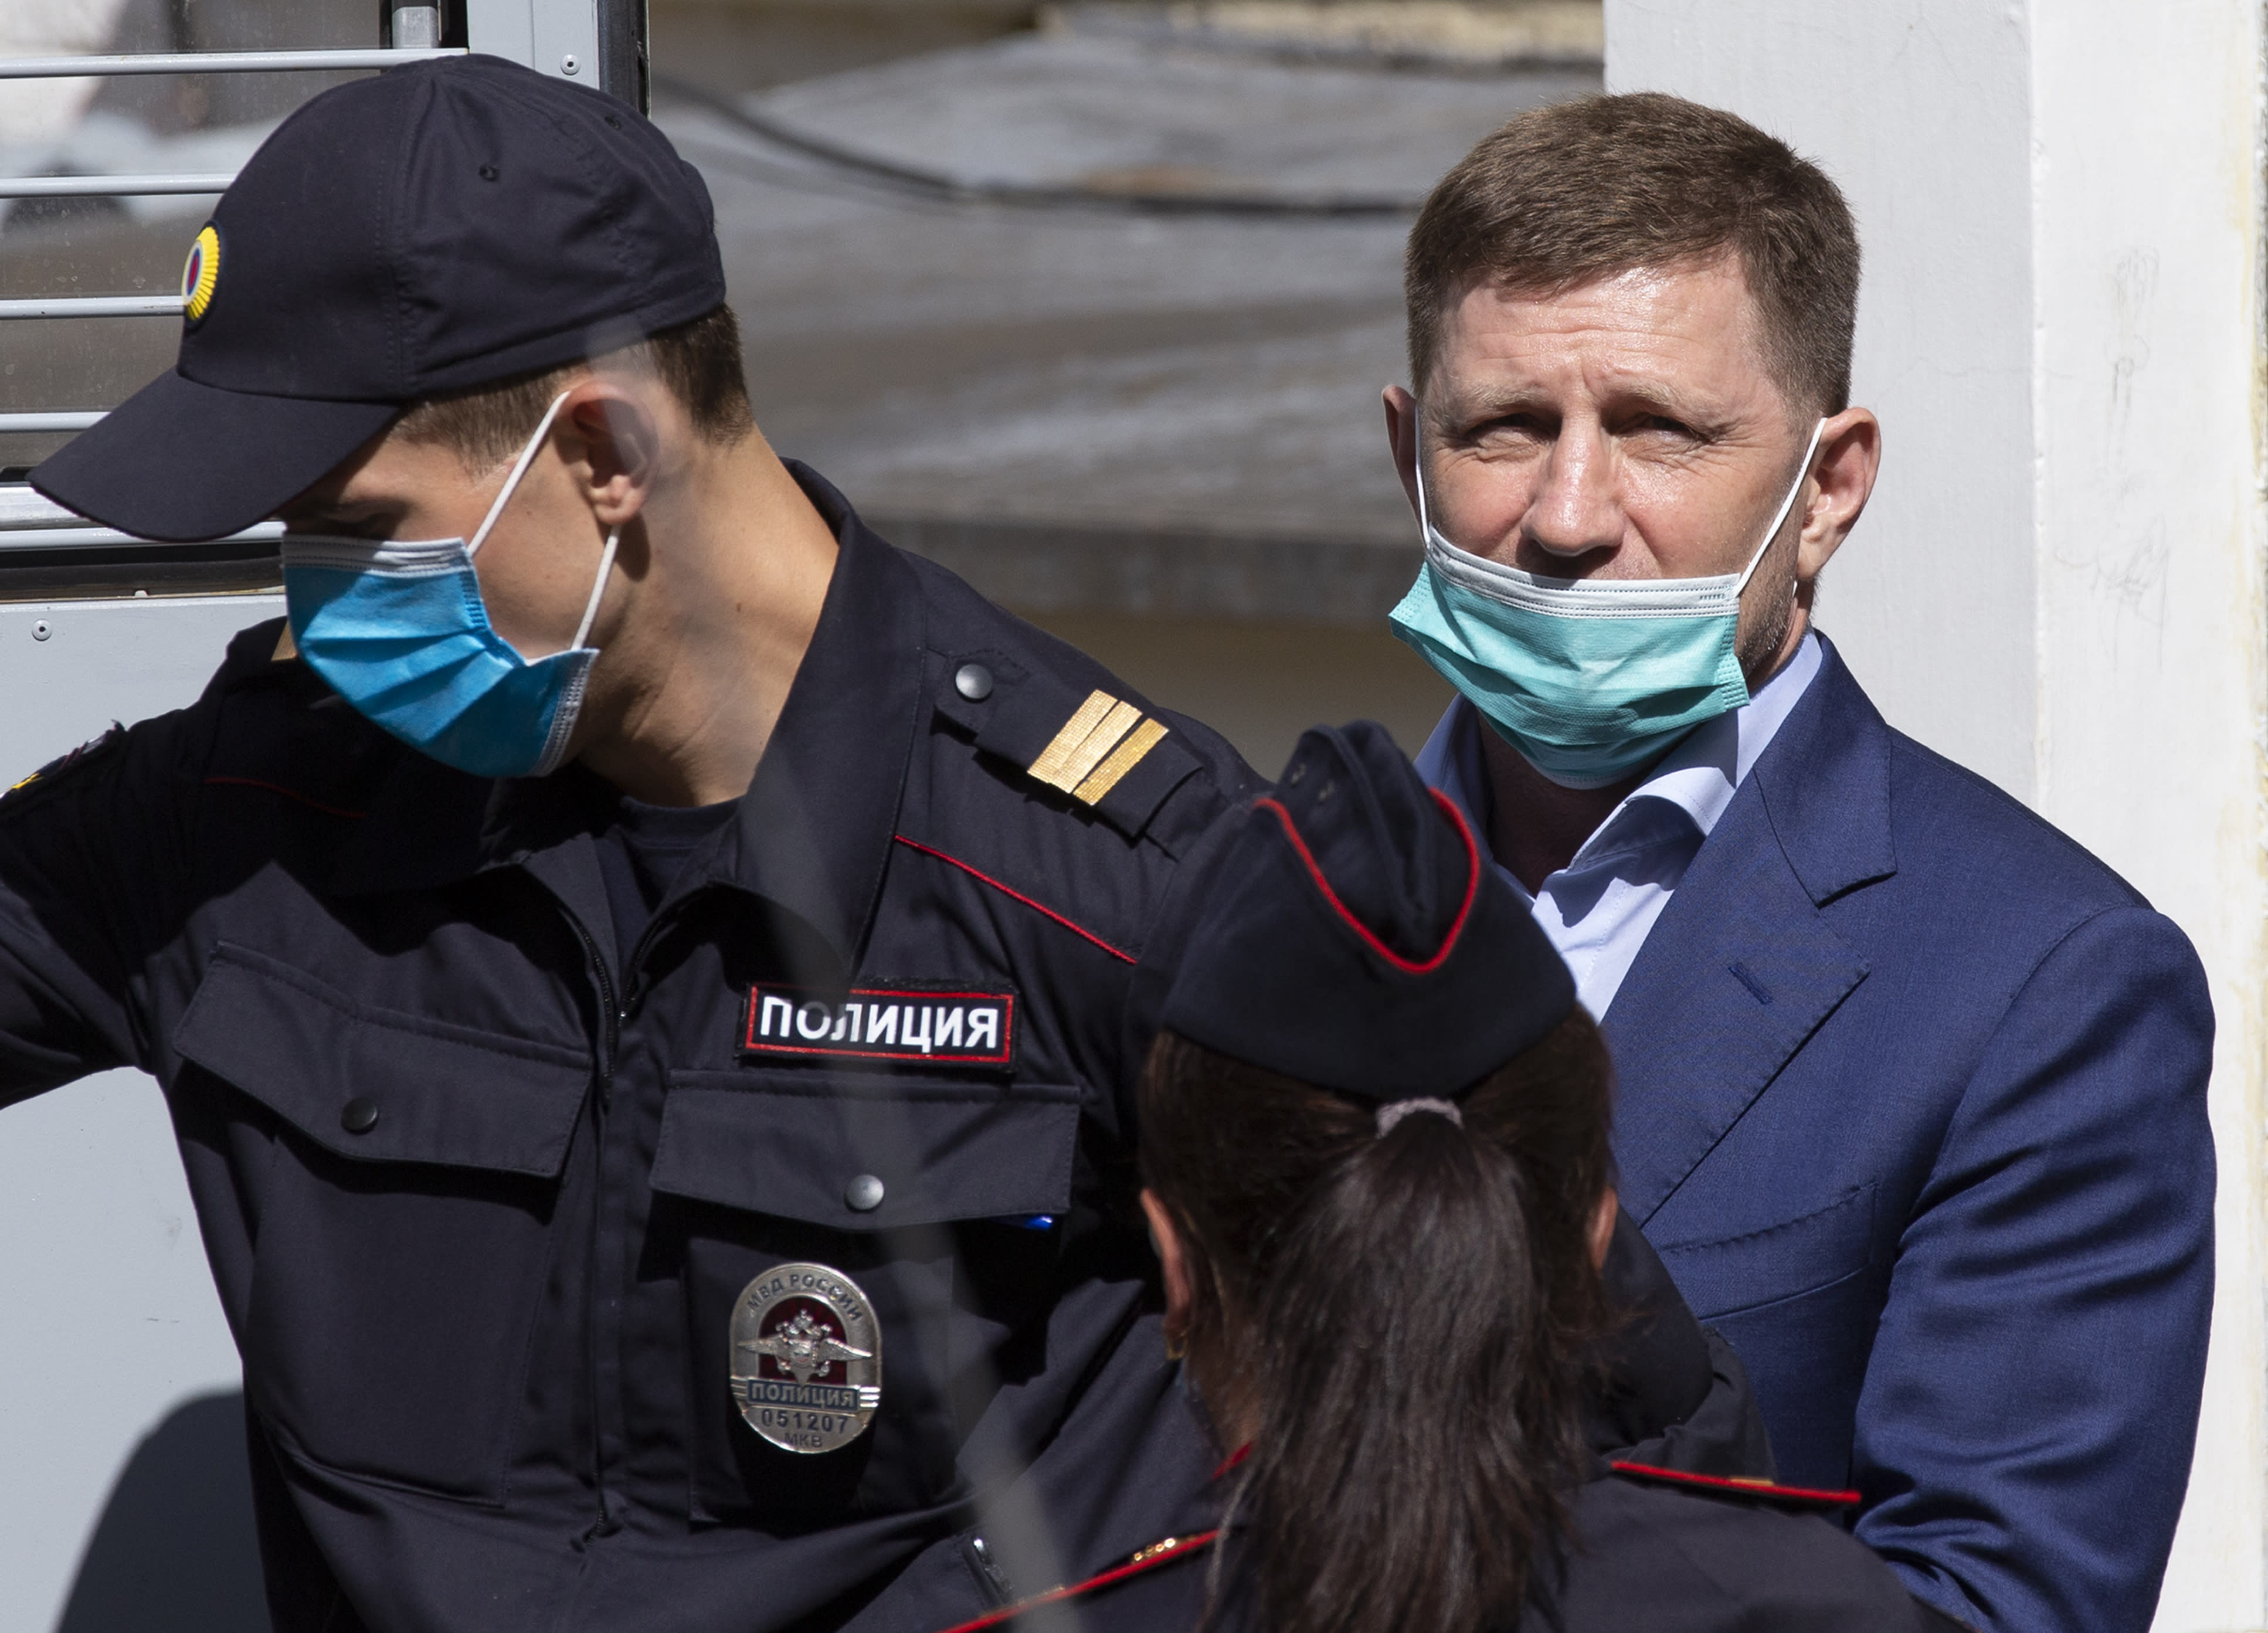 A governor of the Khabarovsk region along the border with China, Sergei Furgal, right, is escorted from a court room in Moscow, Russia, Friday, July 10, 2020. A provincial governor in Russia's far east has been arrested on charges of involvement in multiple murders and was flown to Moscow. The court ordered Frugal to be jailed for two months as the investigation continues. (AP Photo/Alexander Zemlianichenko)